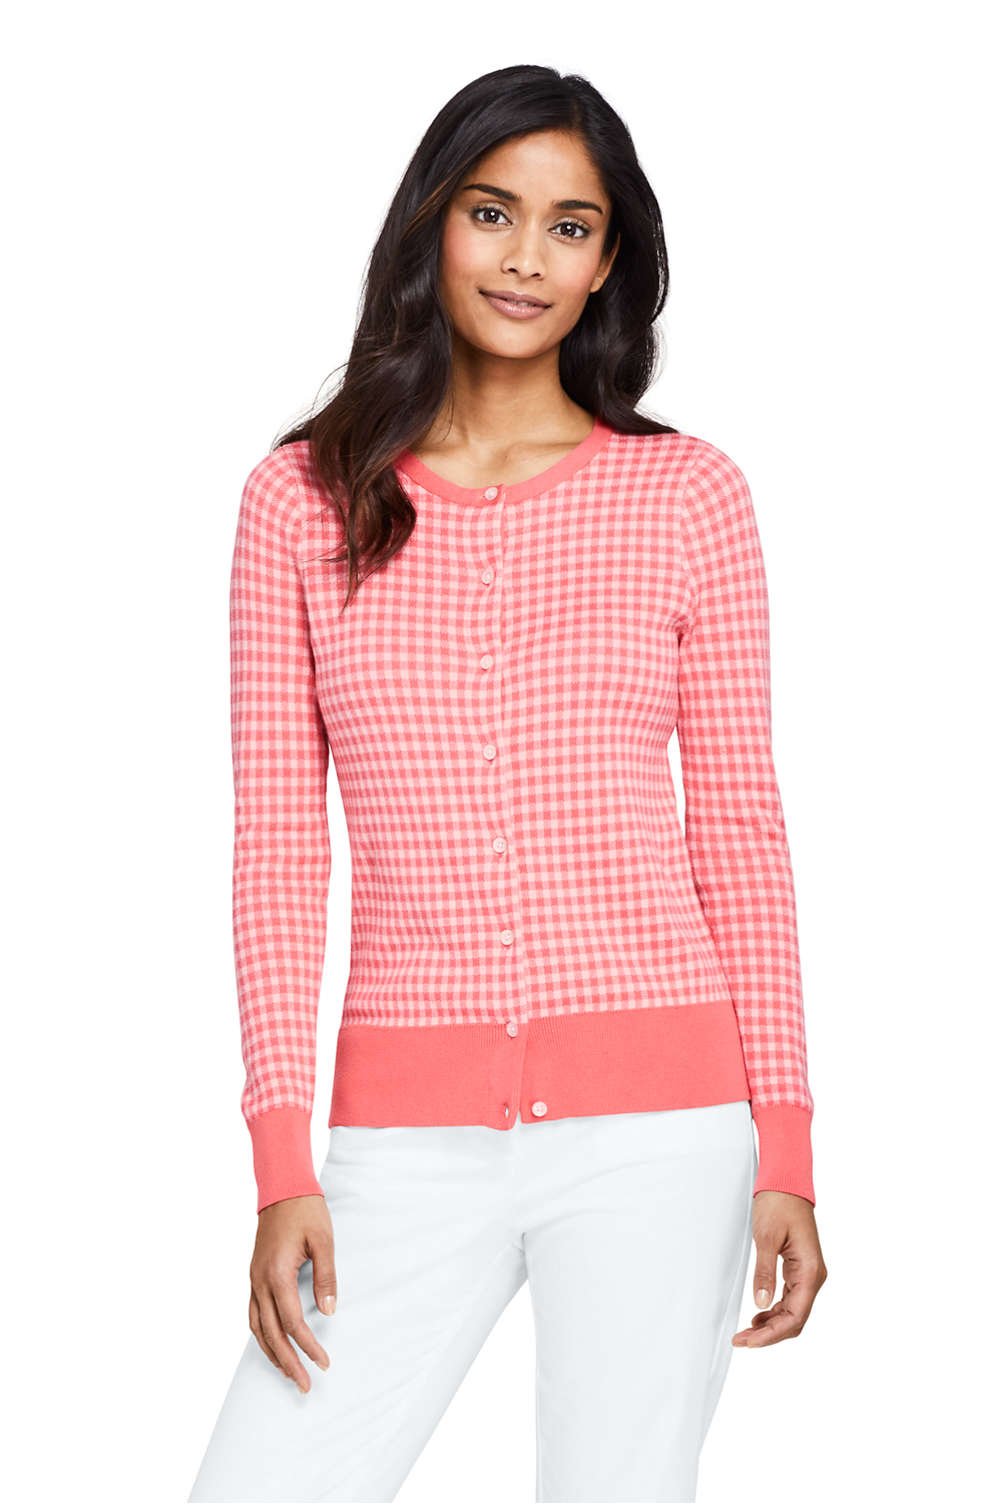 ed1f137fc46 Women's Supima Cotton Jacquard Cardigan Sweater from Lands' End